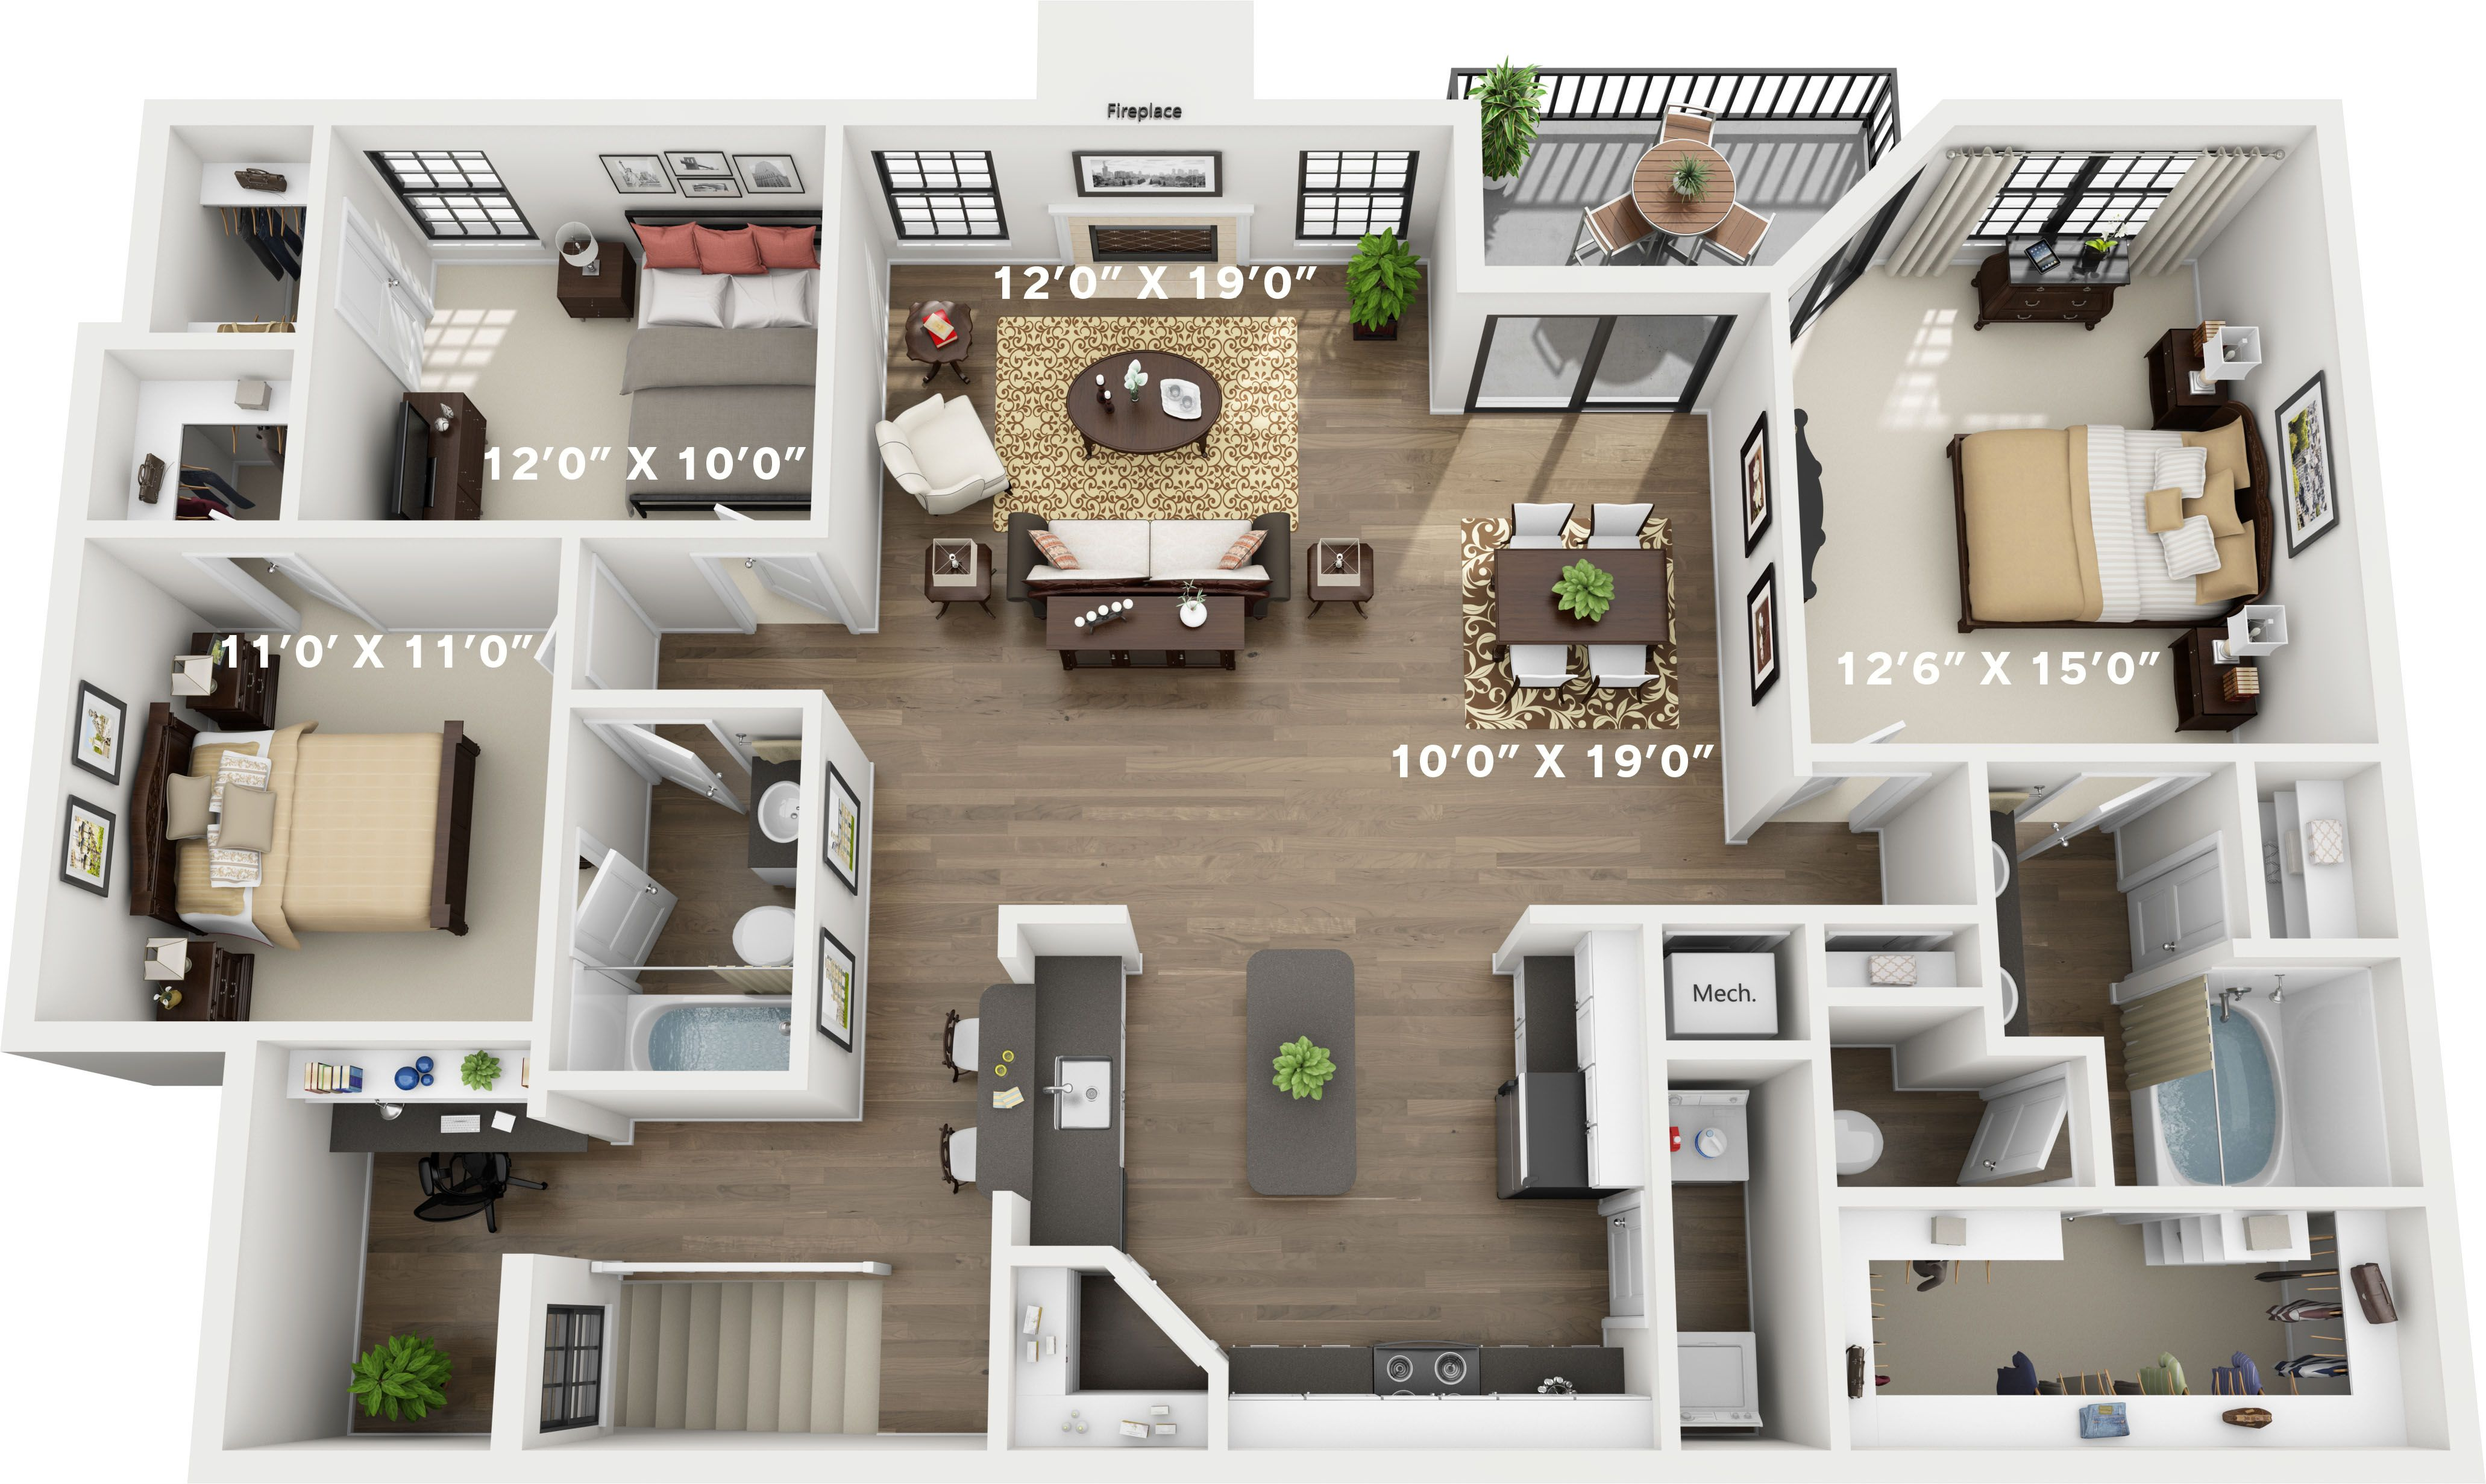 1 2 3 And 4 Bedroom Apartments In North Richland Hills Tx Northrichlandhills Texas Apartment St Sims House Plans Sims 4 House Plans Sims House Design